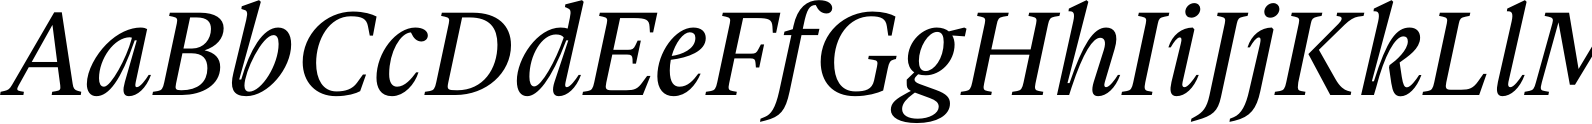 Gauthier Next FY Medium Italic